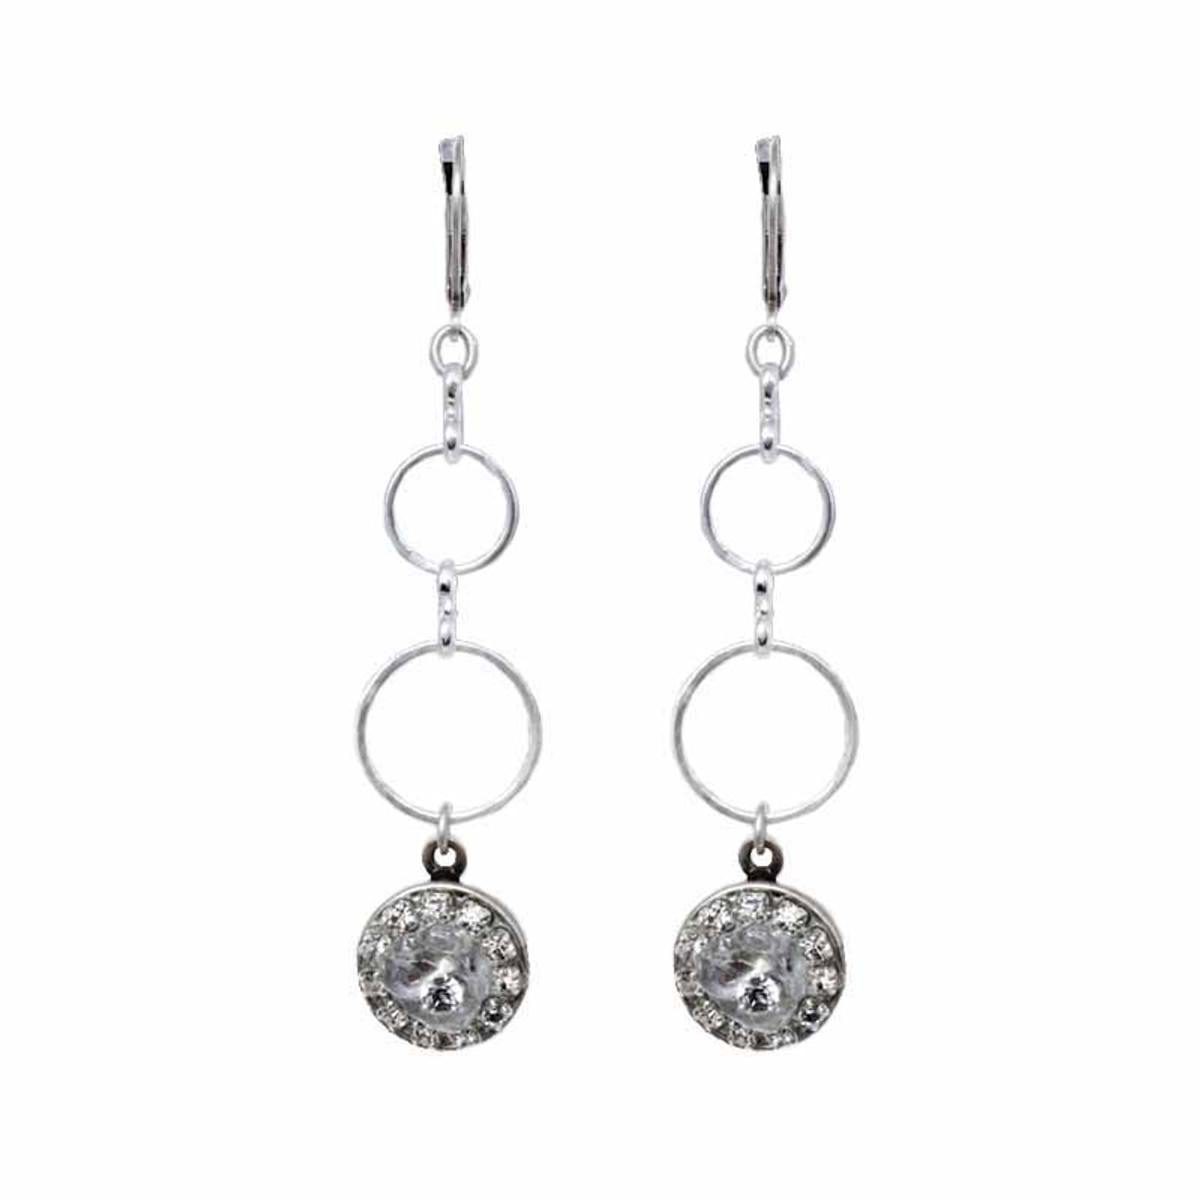 Michal Golan Icy Dreams Dangling Charm Earrings